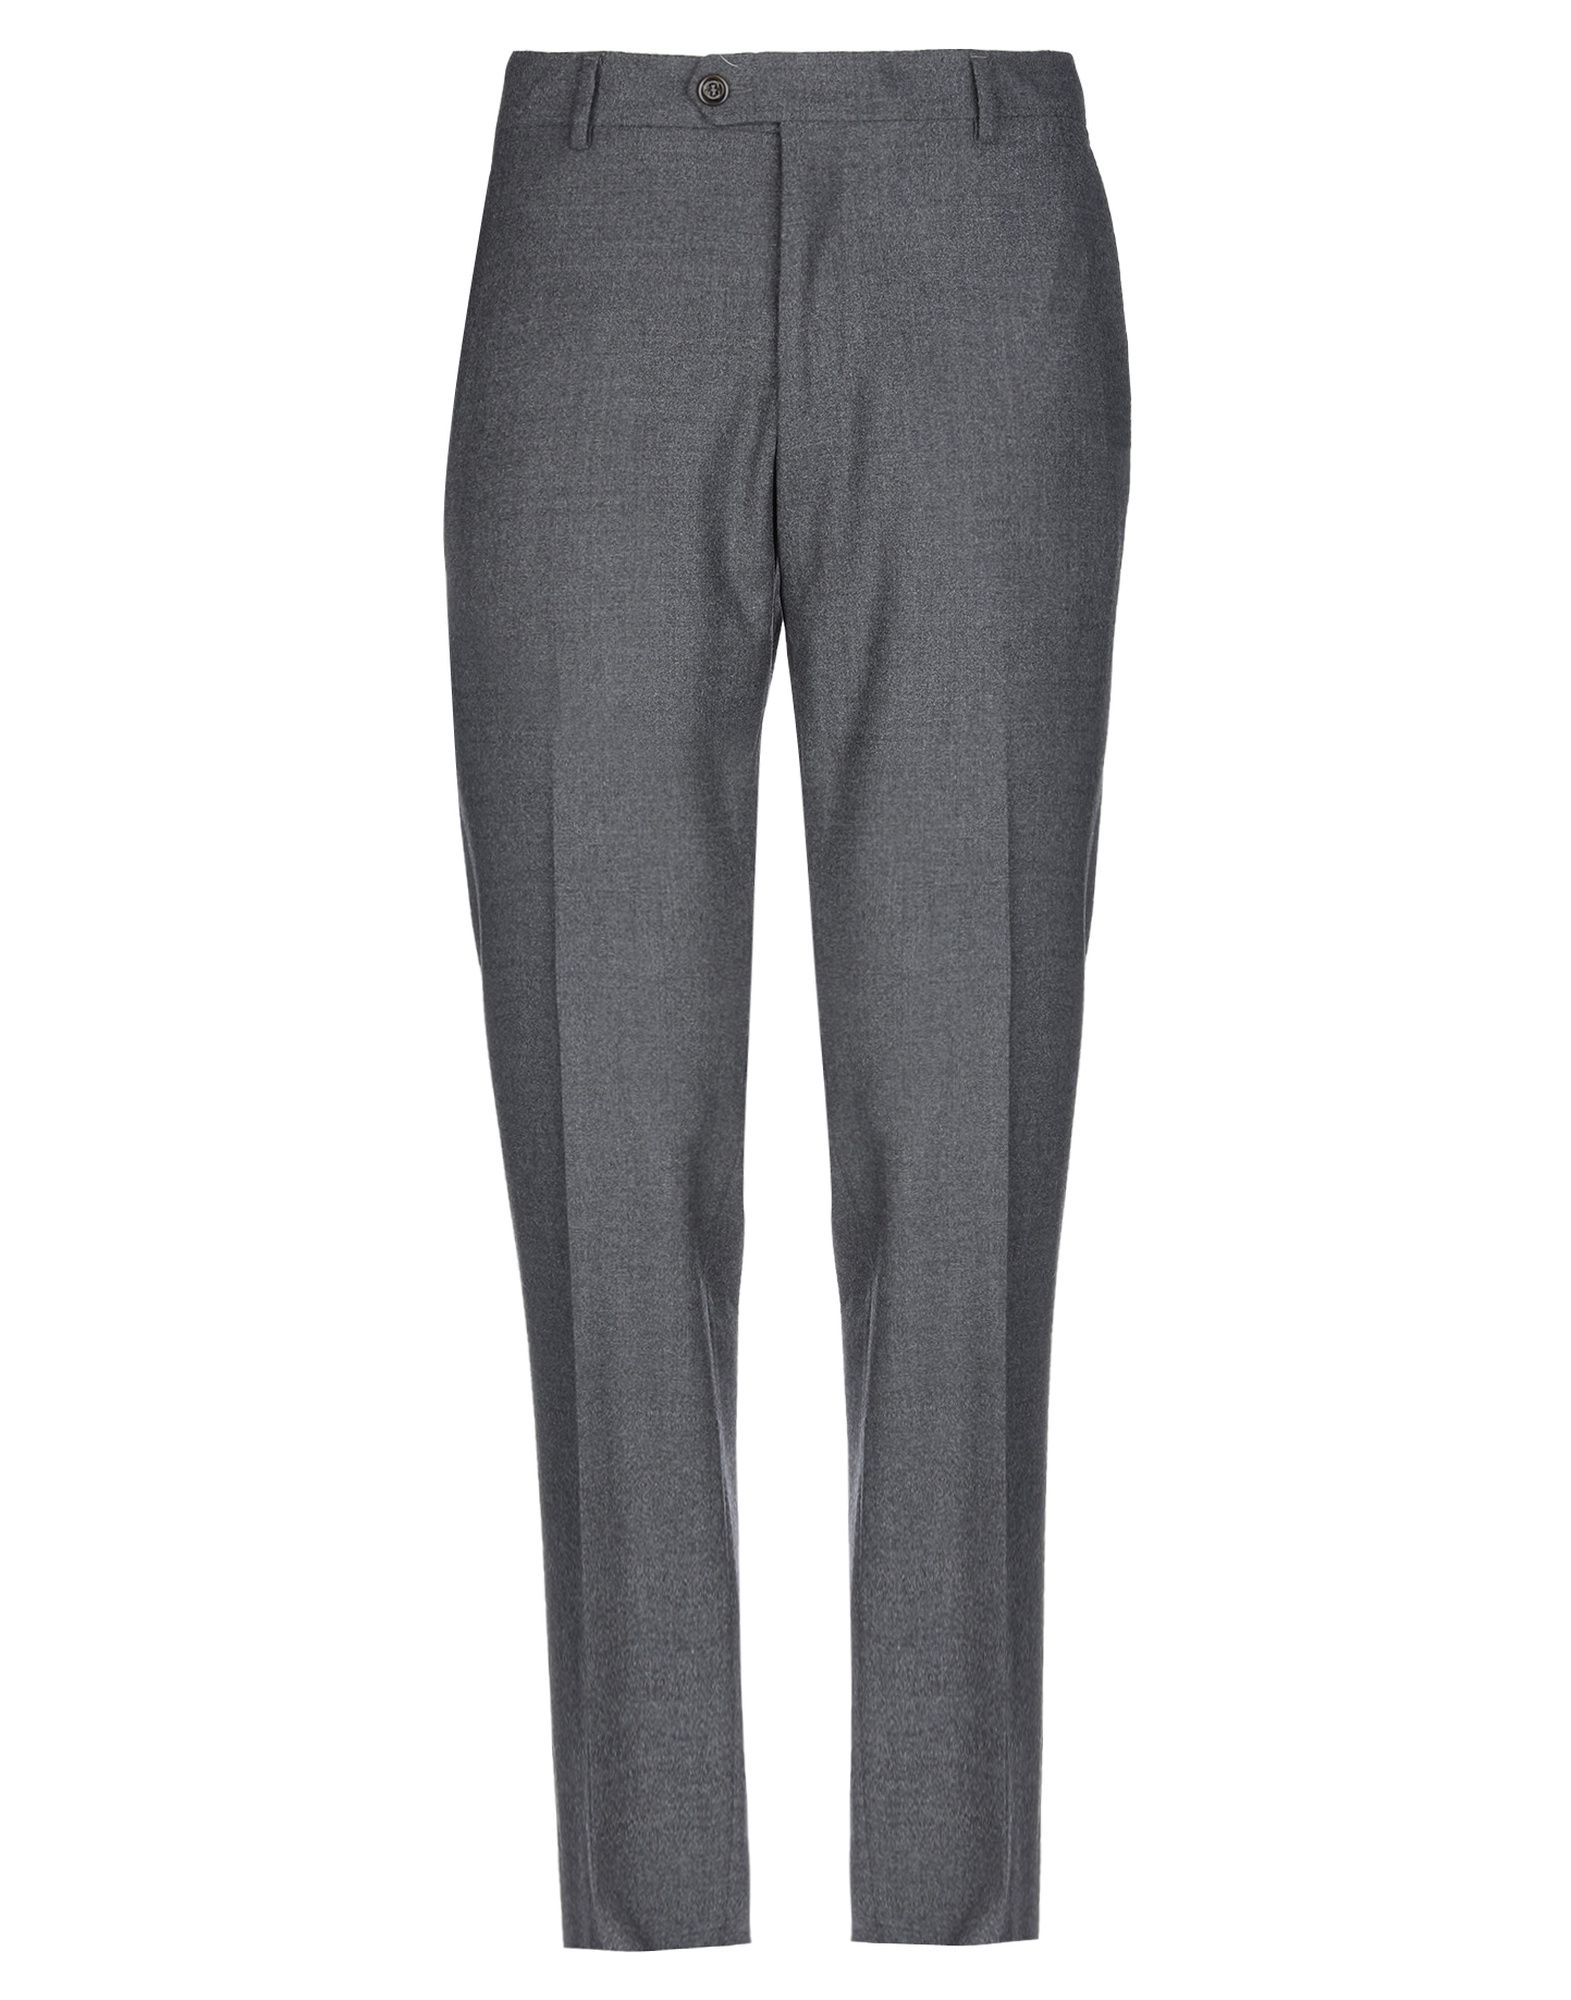 ELEVENTY Casual pants. flannel, logo, solid color, mid rise, slim fit, tapered leg, button, zip, multipockets, stretch. 96% Wool, 4% Elastane, Polyester, Cotton